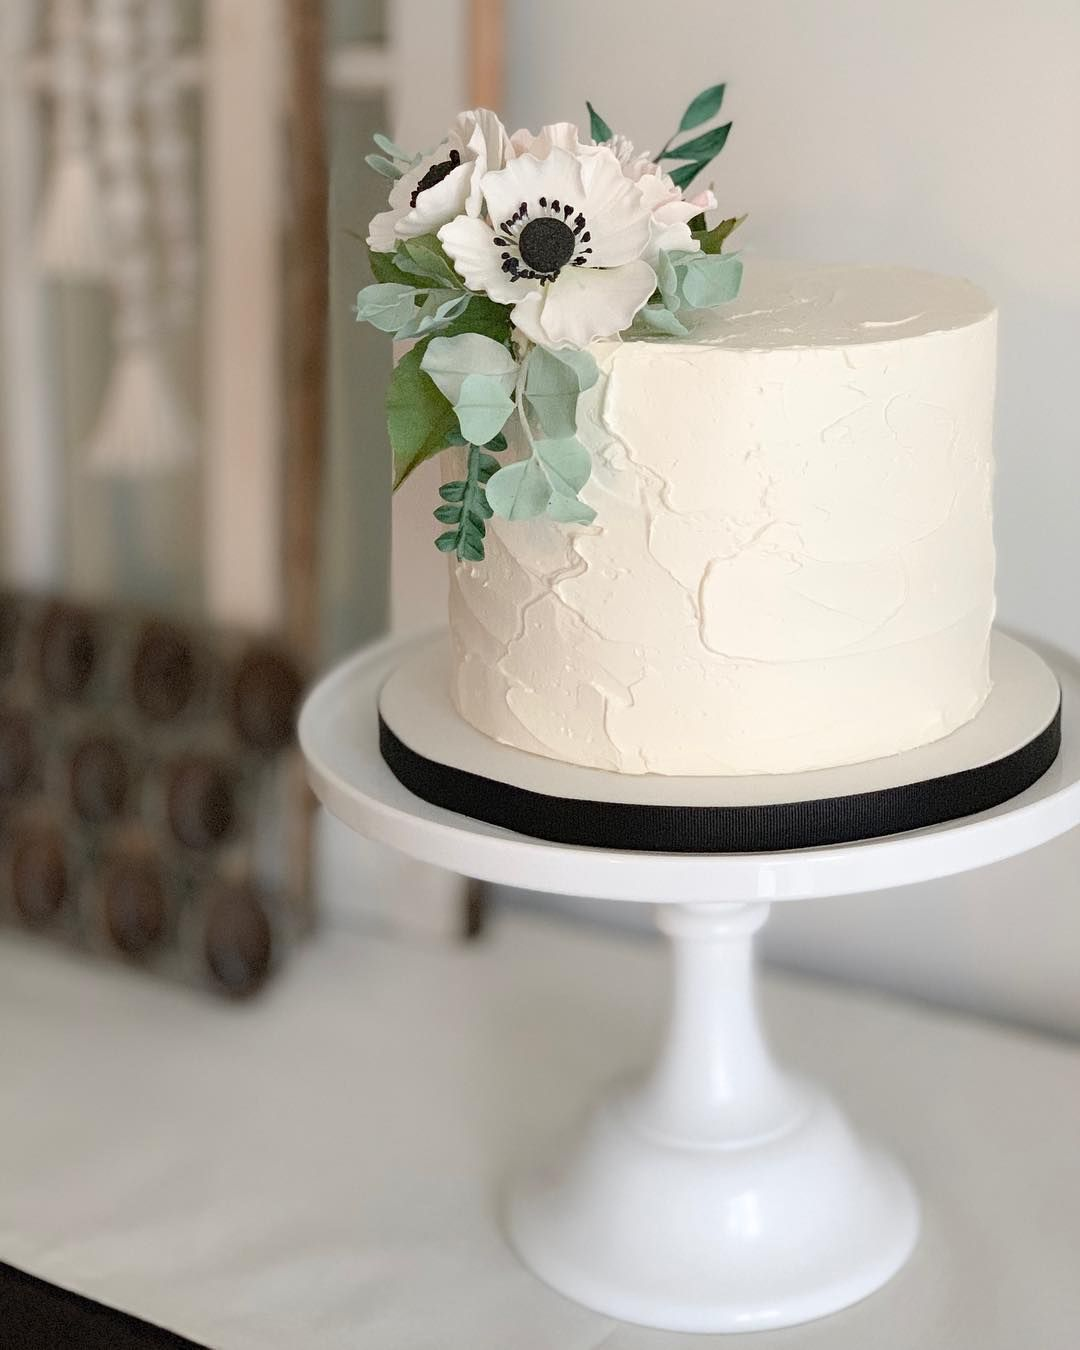 I Just Love This Sweet Simple Little Wedding Cake Anemone Tutorial Is On The Site Learntocake Com Or Wedding Cake Pops Ivory Wedding Cake Simple Wedding Cake